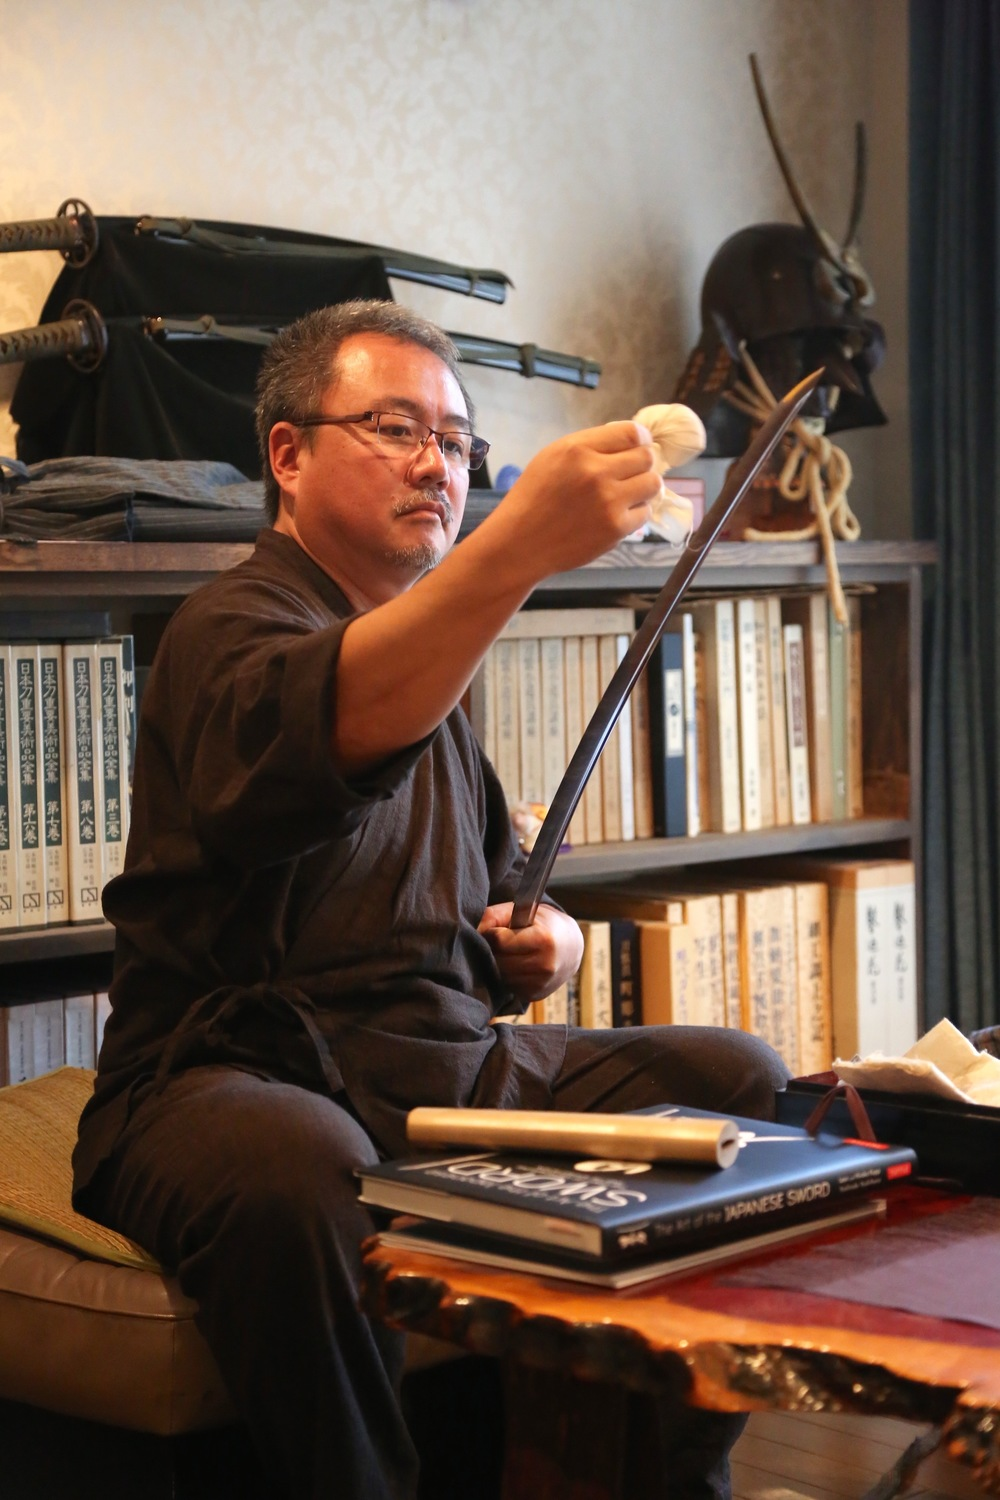 We would like to present you with an invaluable opportunity to see with your own eyes the process of sword making a form of japanese art recognized and